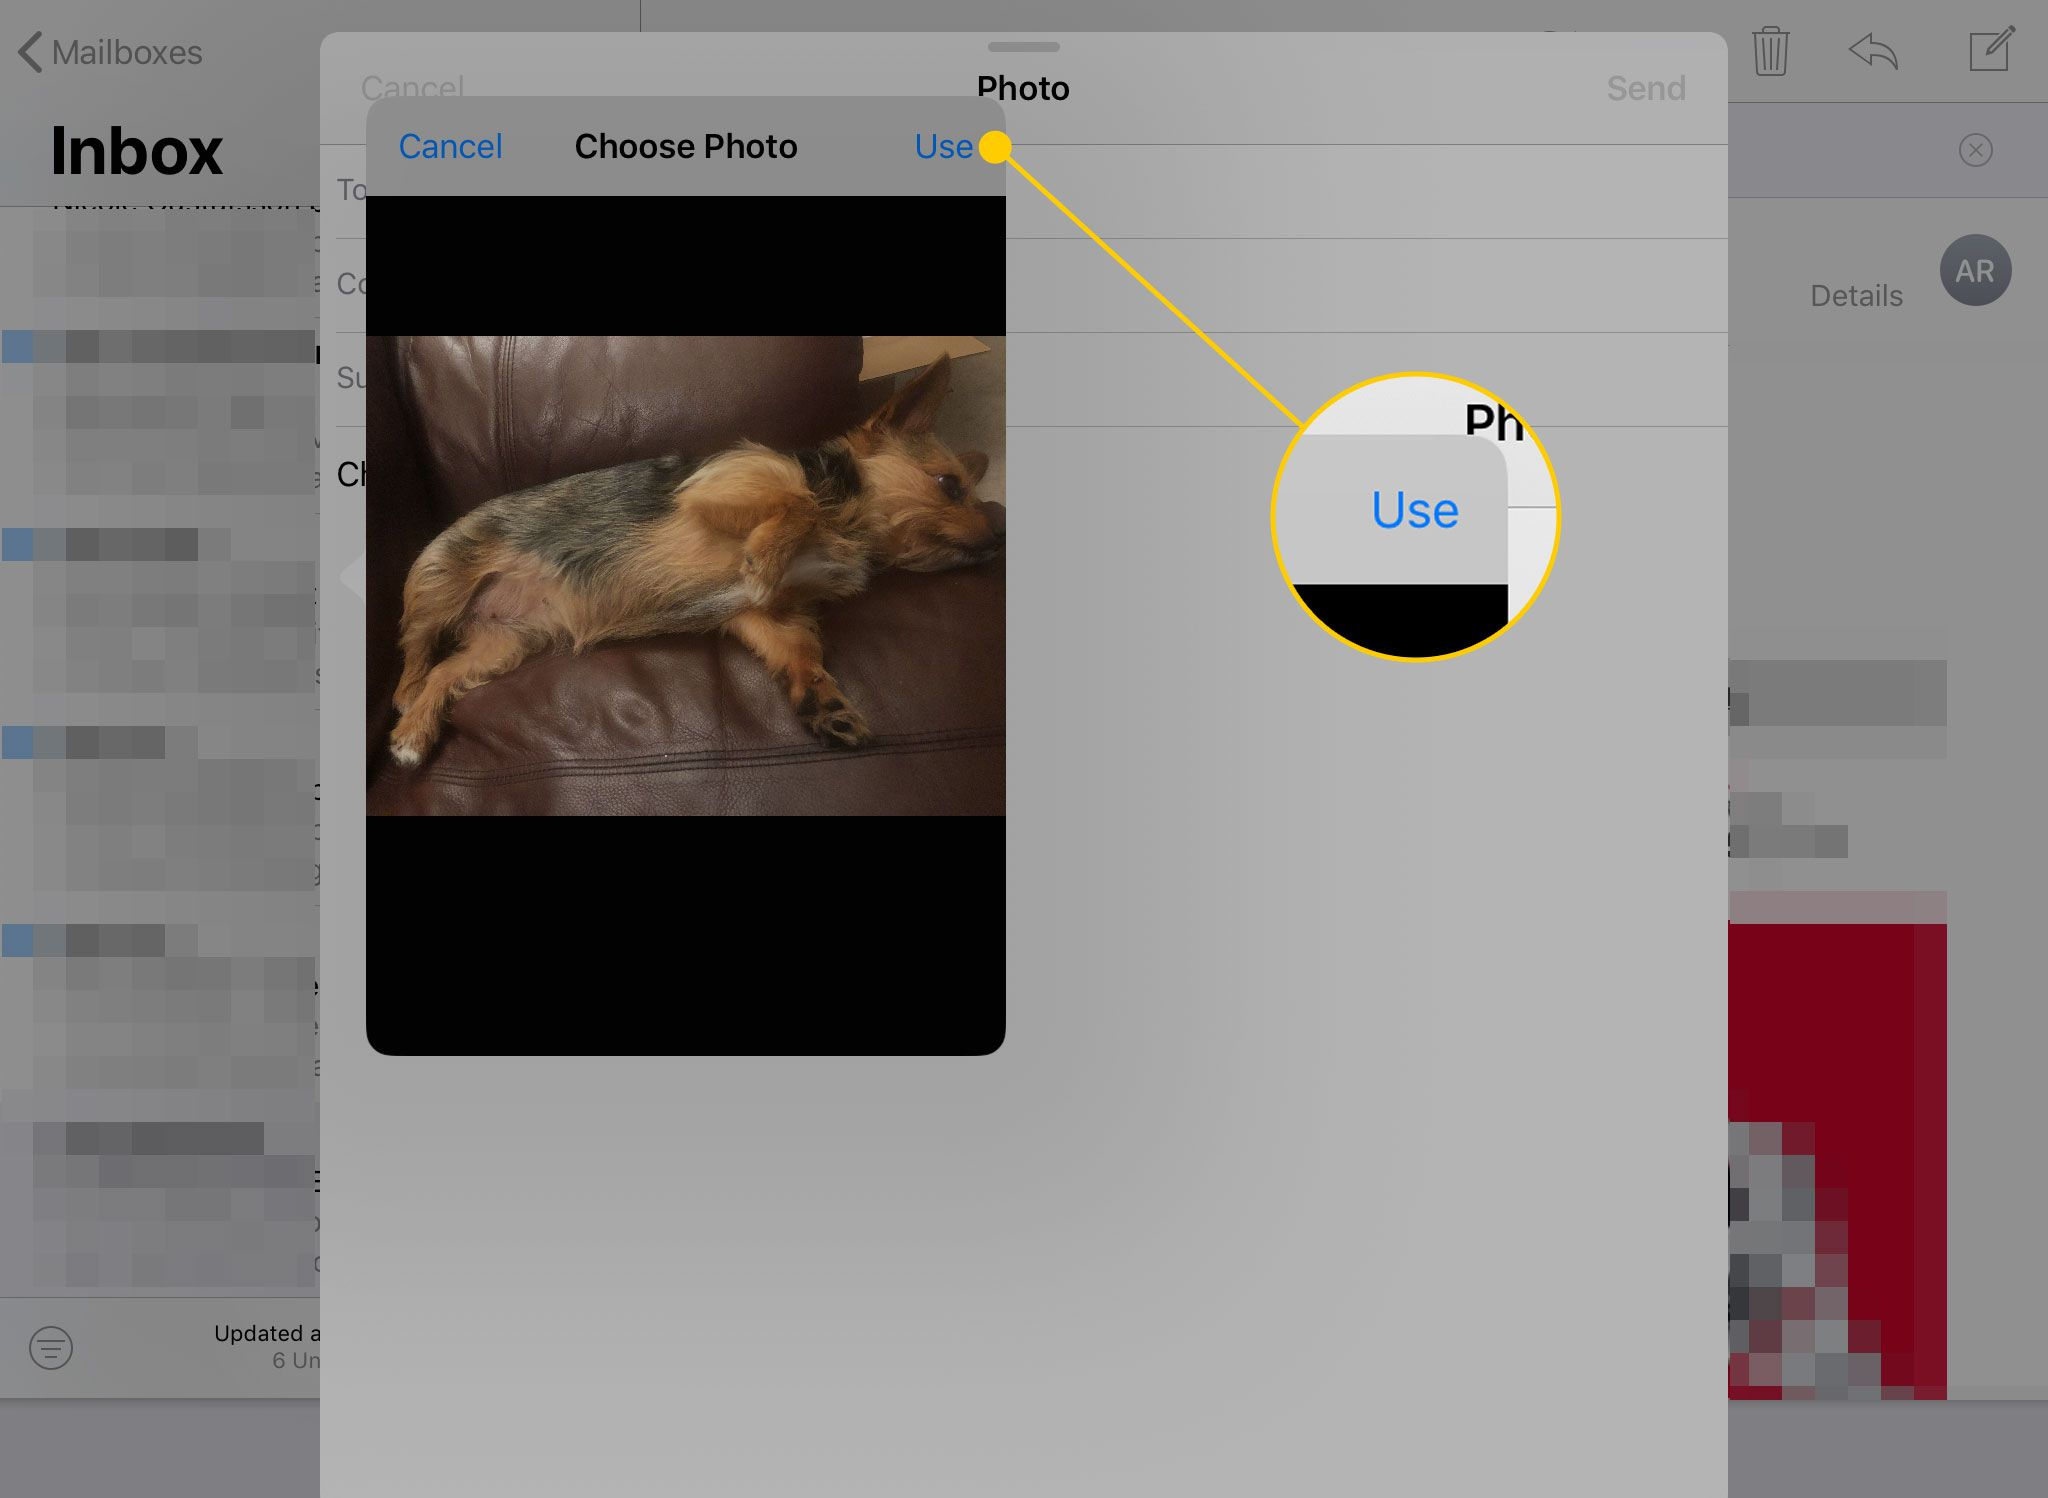 A photo selection window open in an email on an iPad with the Use button highlighted